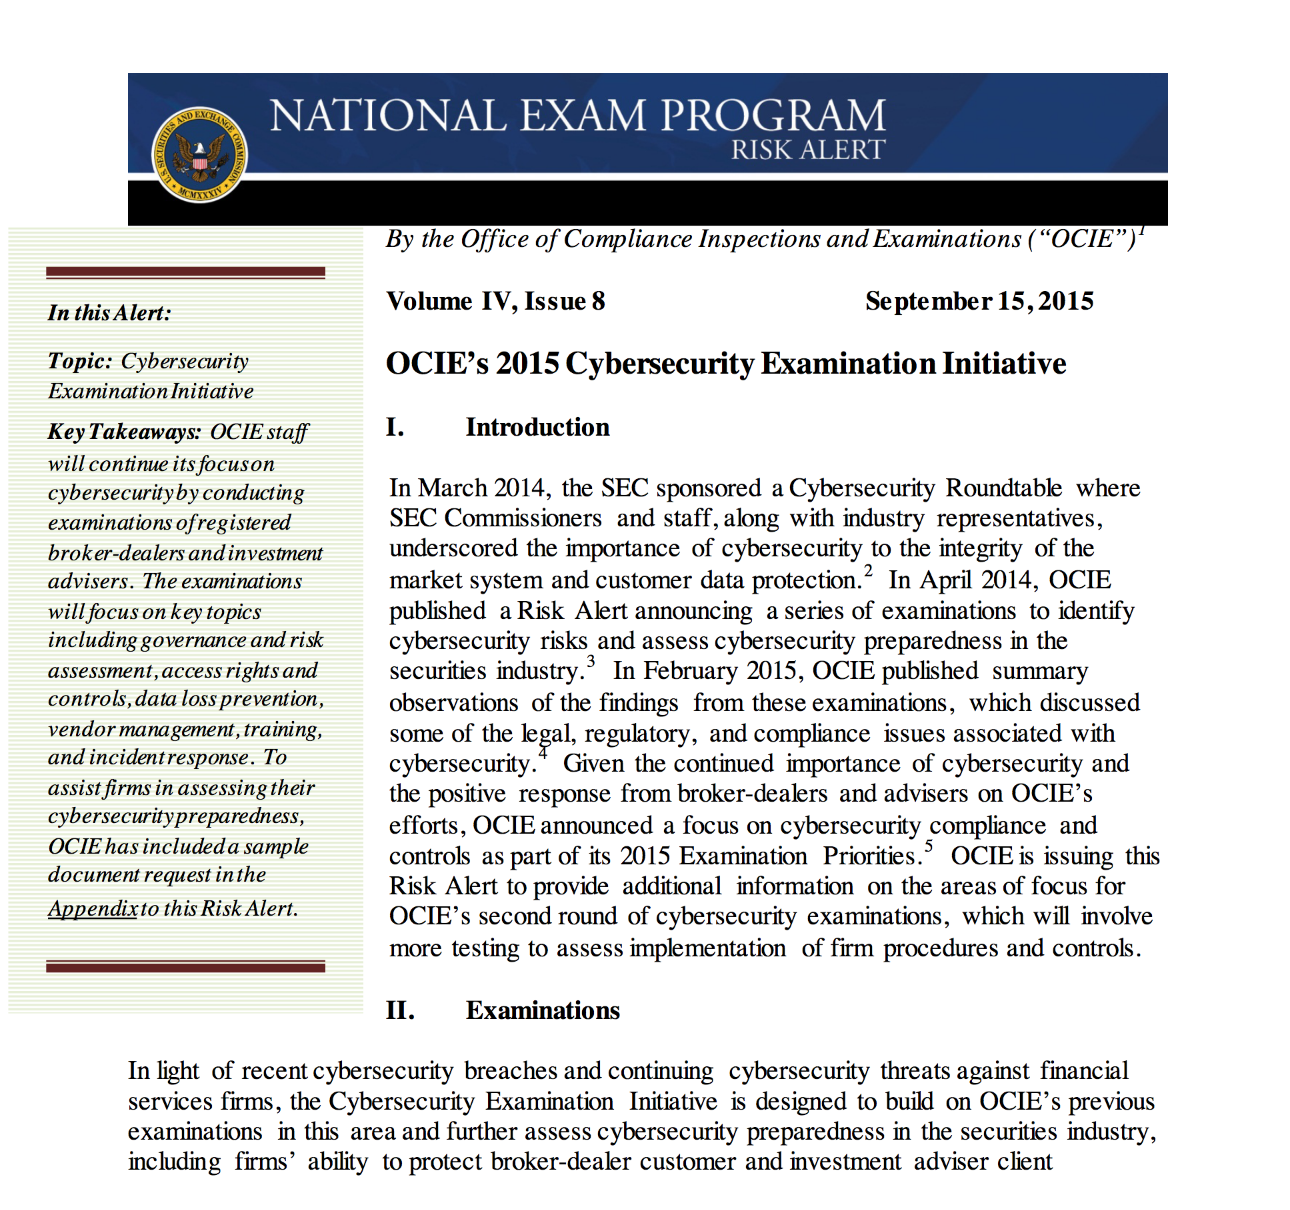 Cybersecurity Examination Initiative